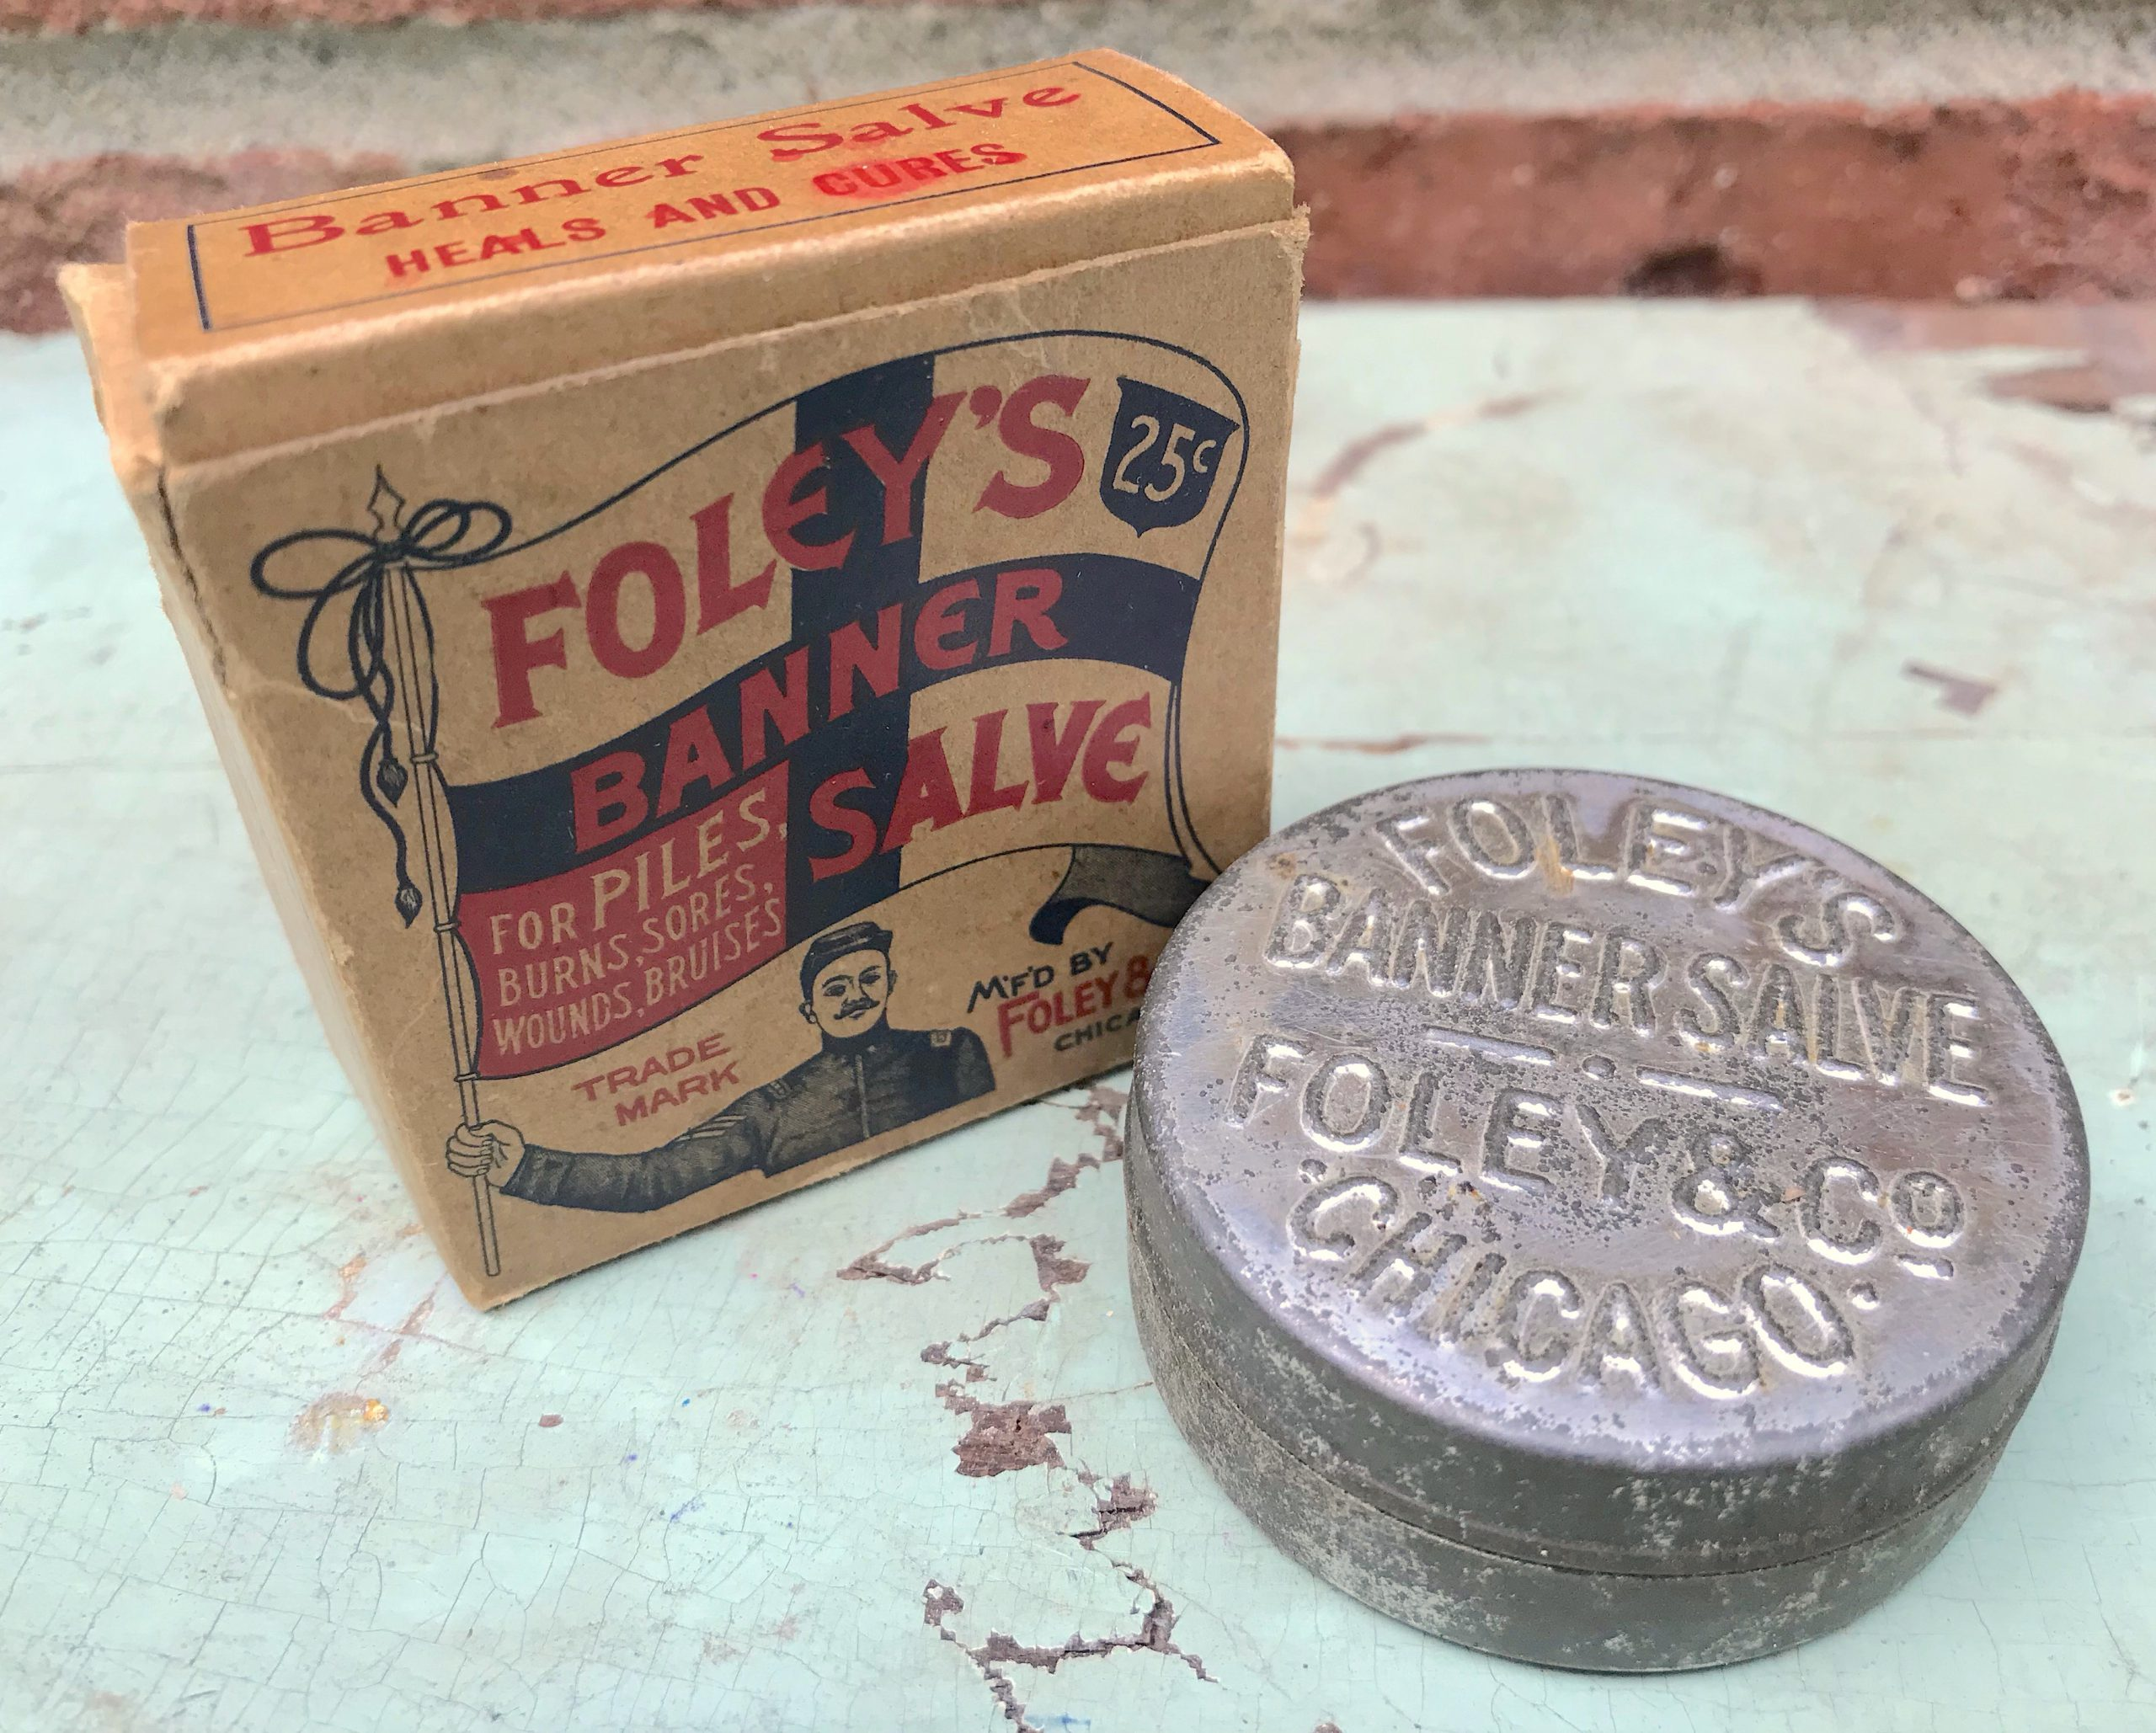 Foley & Co History - Foley's Banner Salve